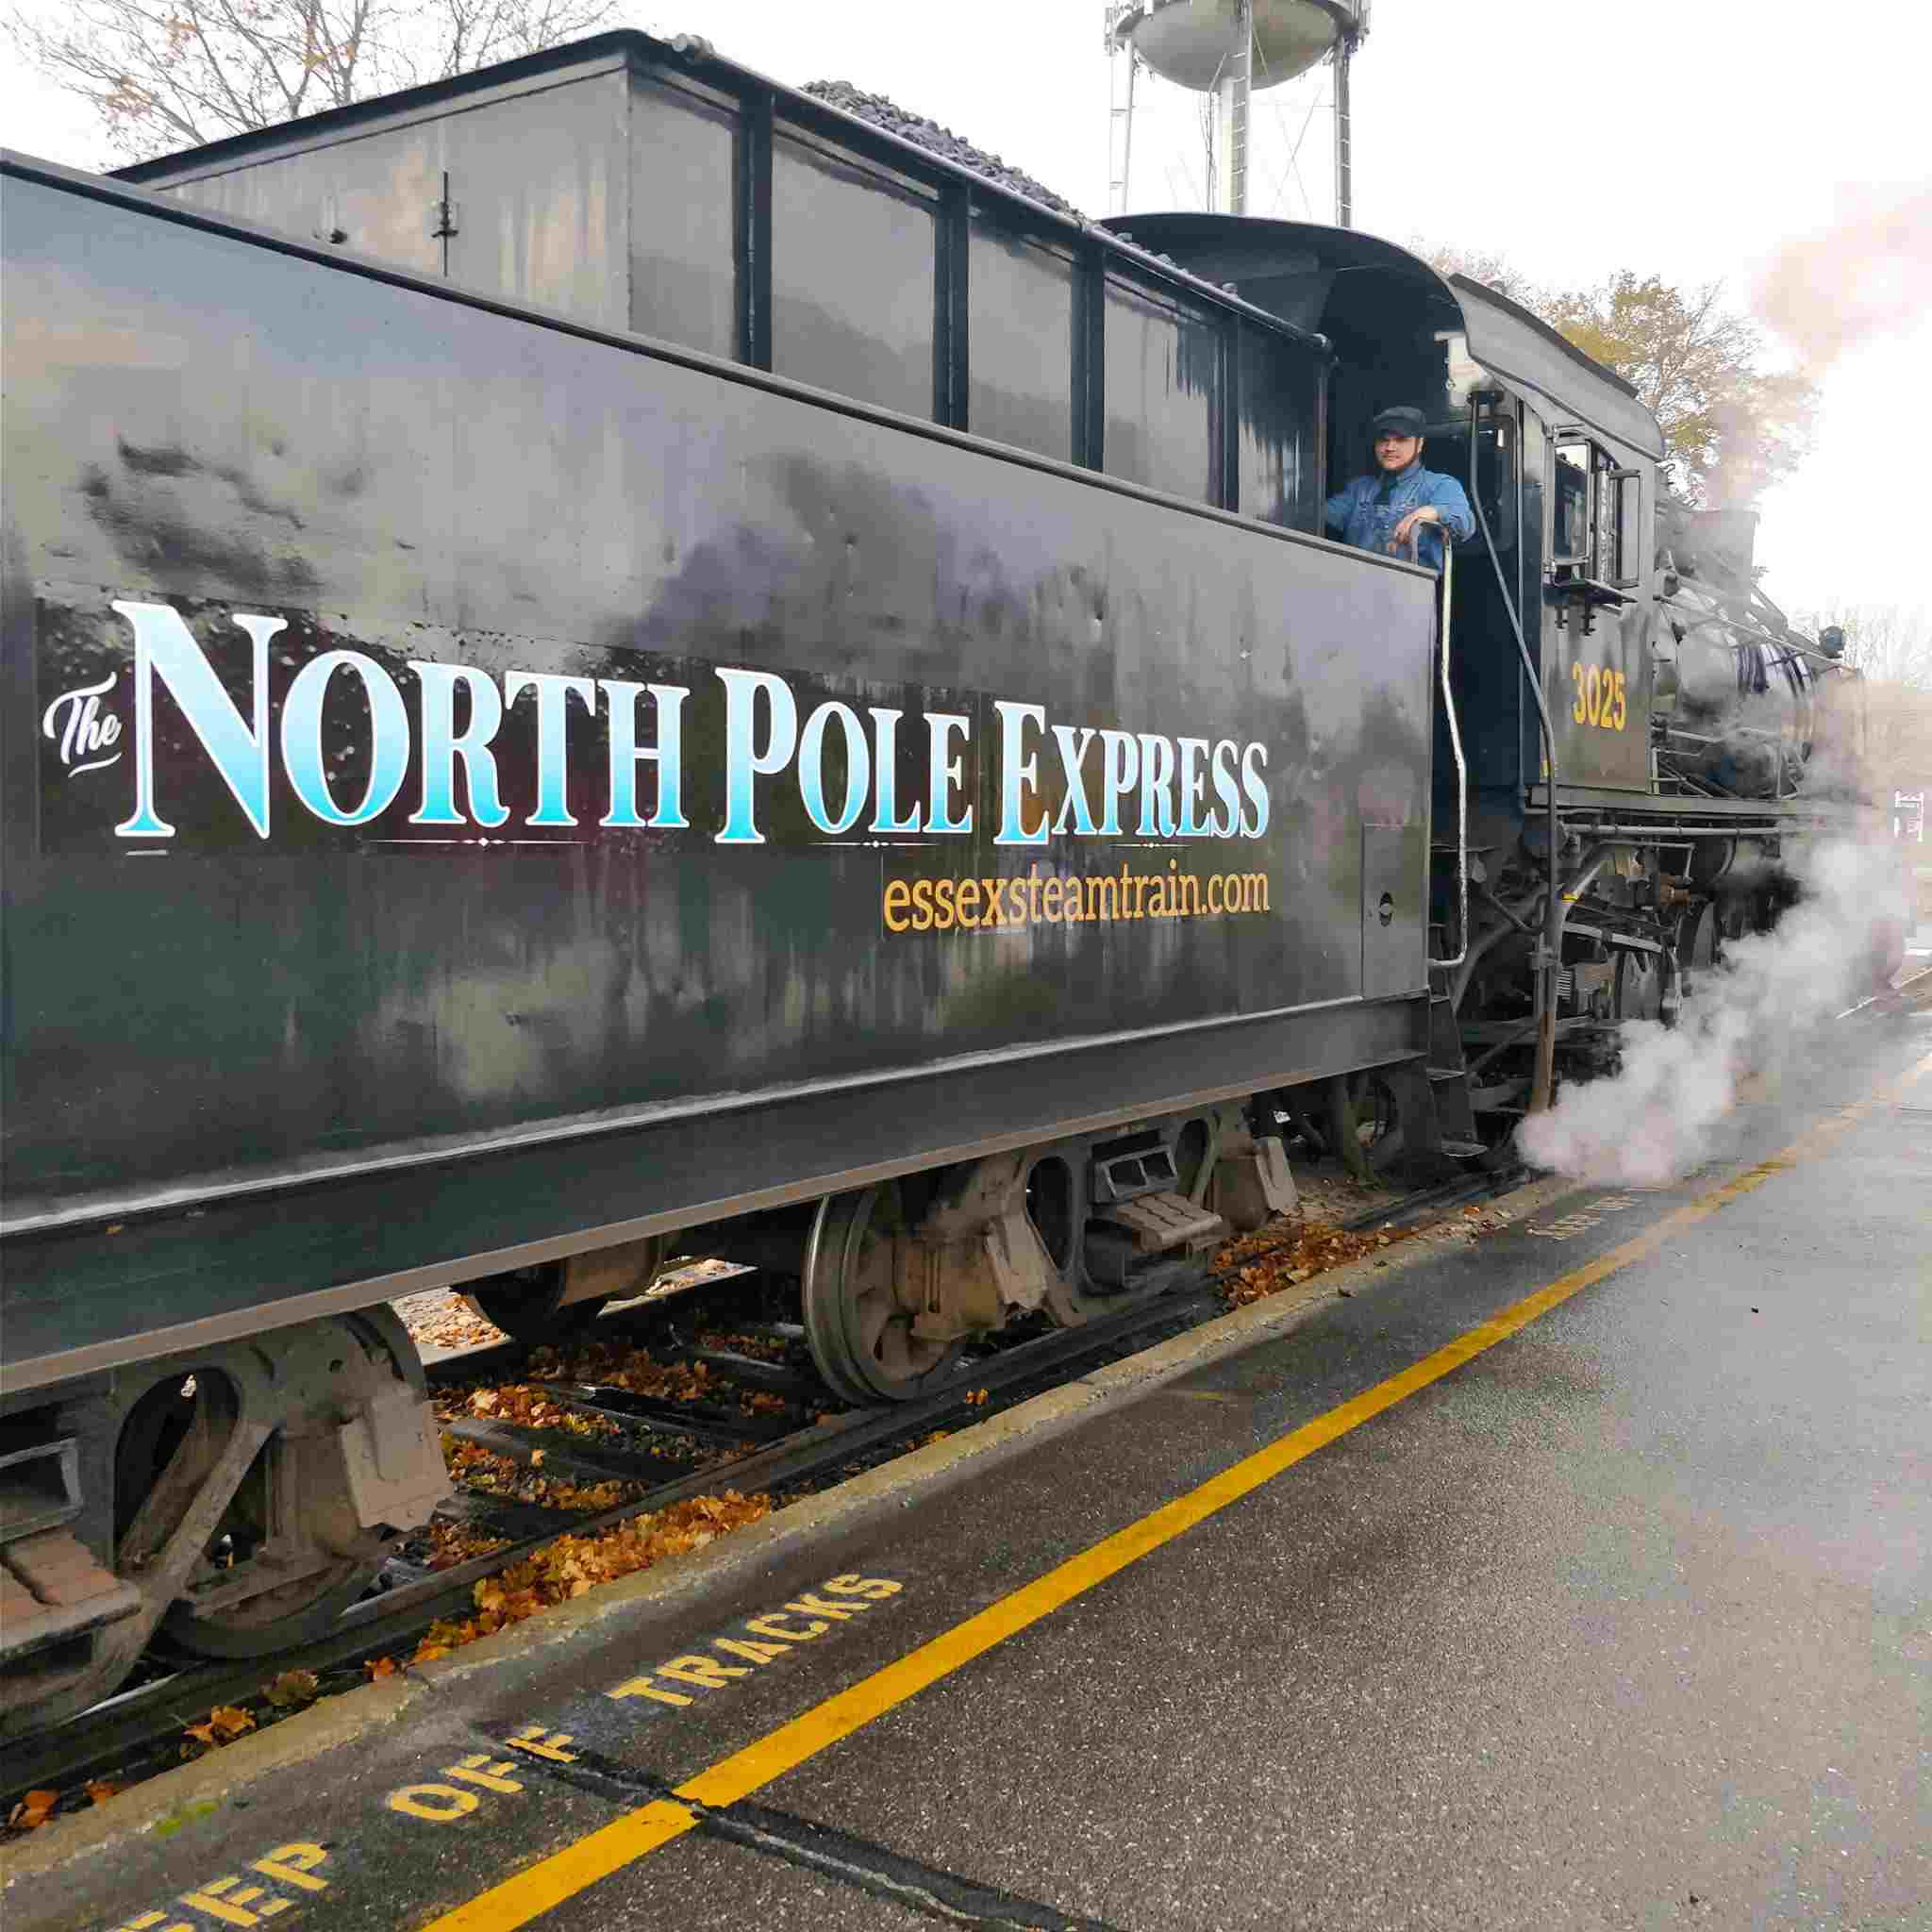 The North Pole Express by Essex Steam Train